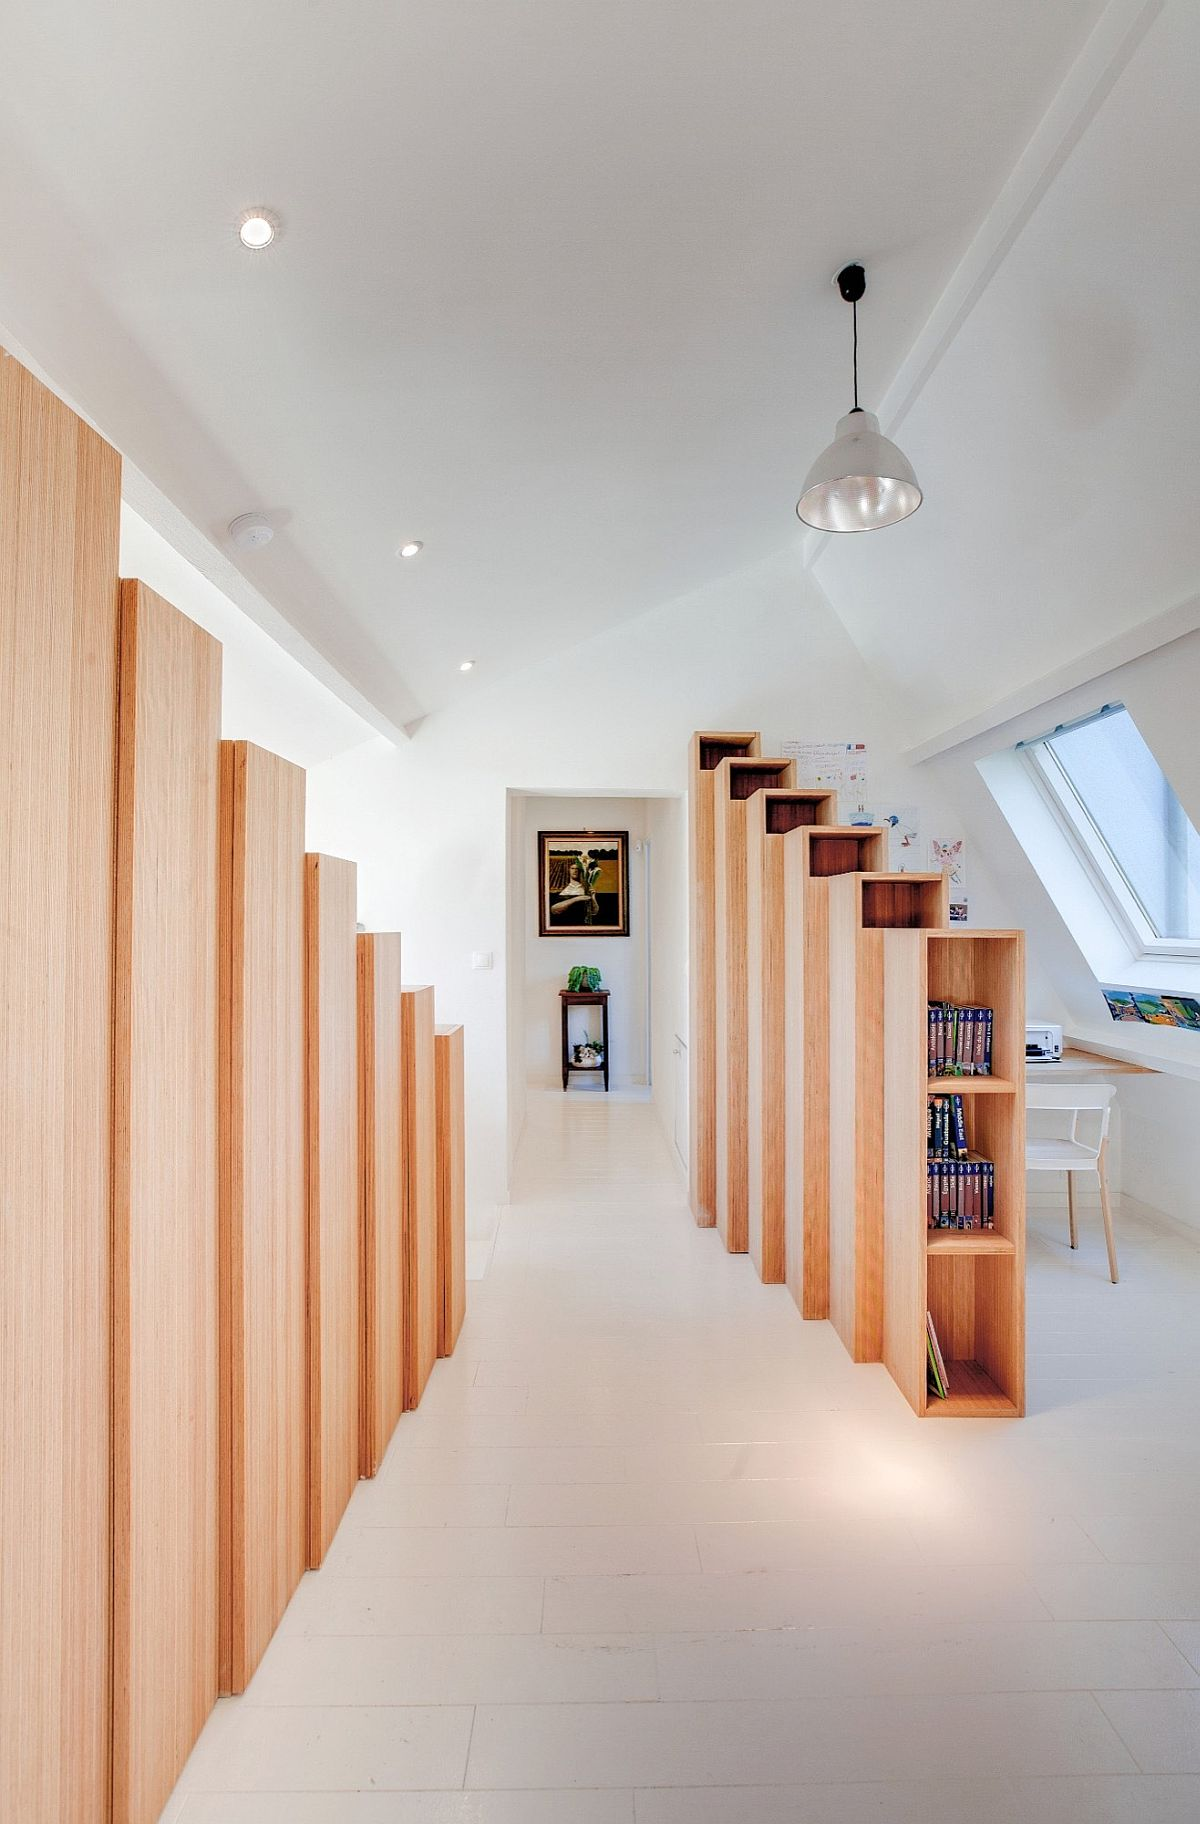 Mezzanine level beech shelving units hide the bedroom entrance